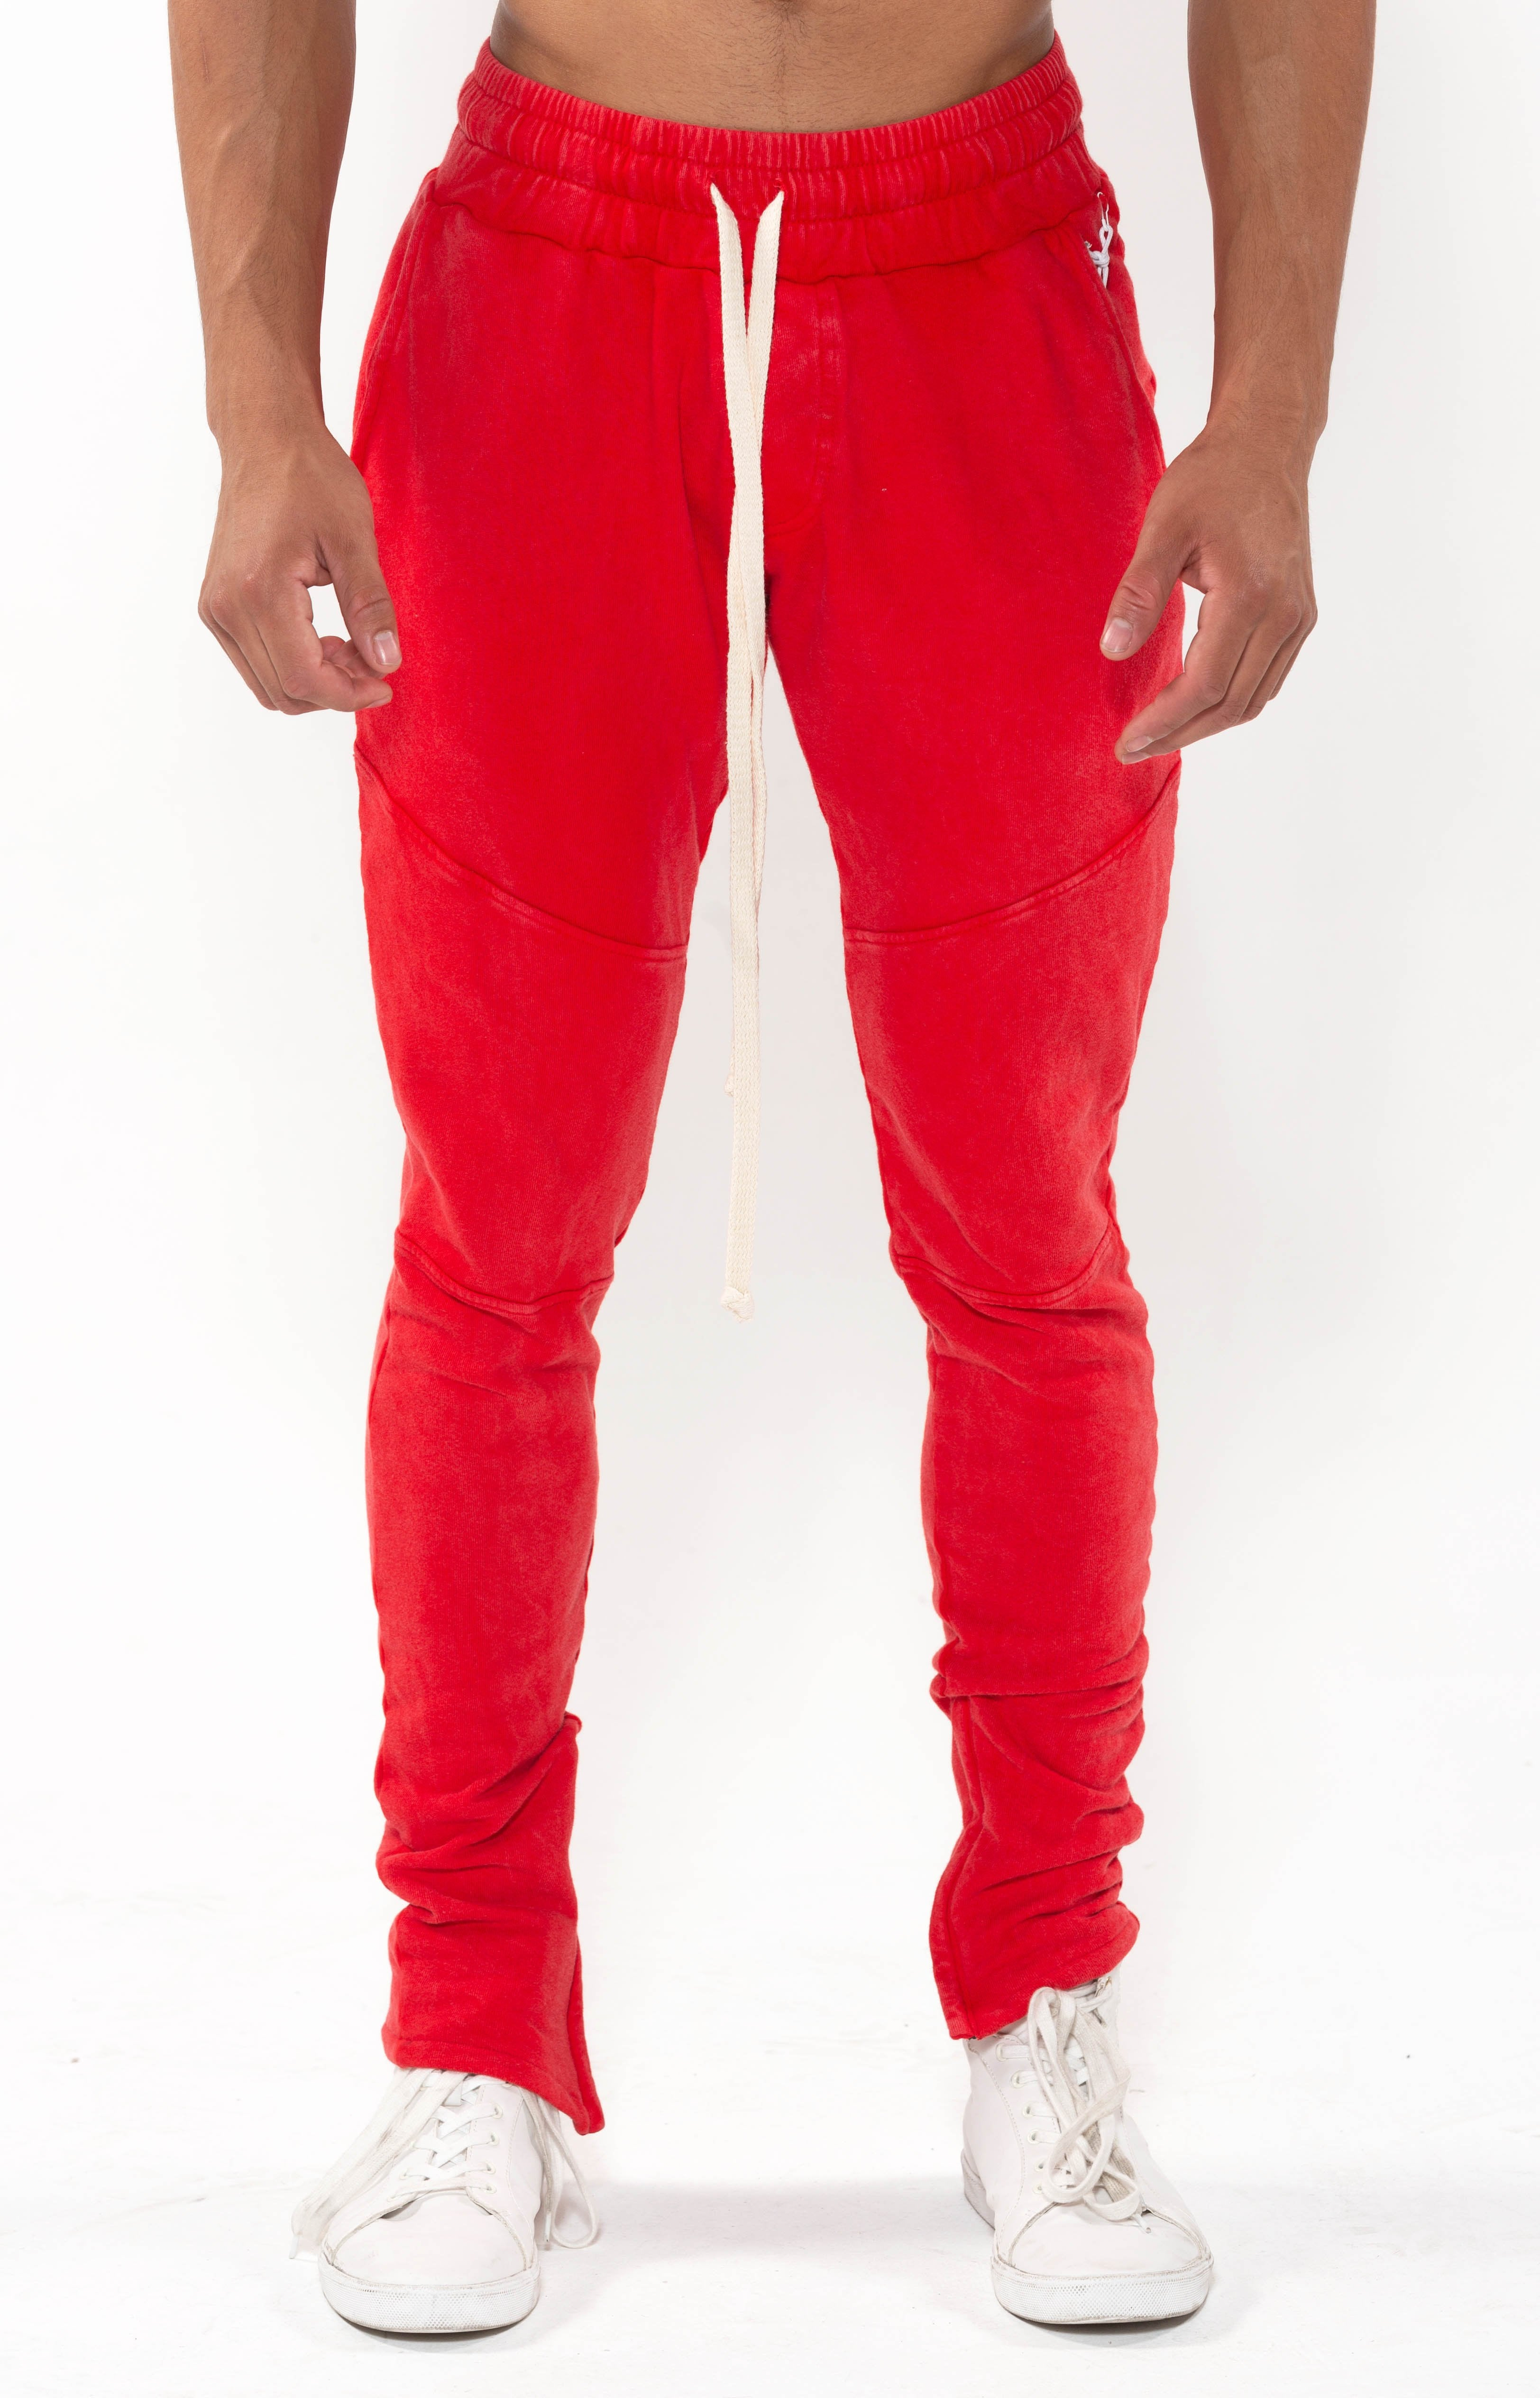 Mineral Joggers - Washed Red - Golden Aesthetics